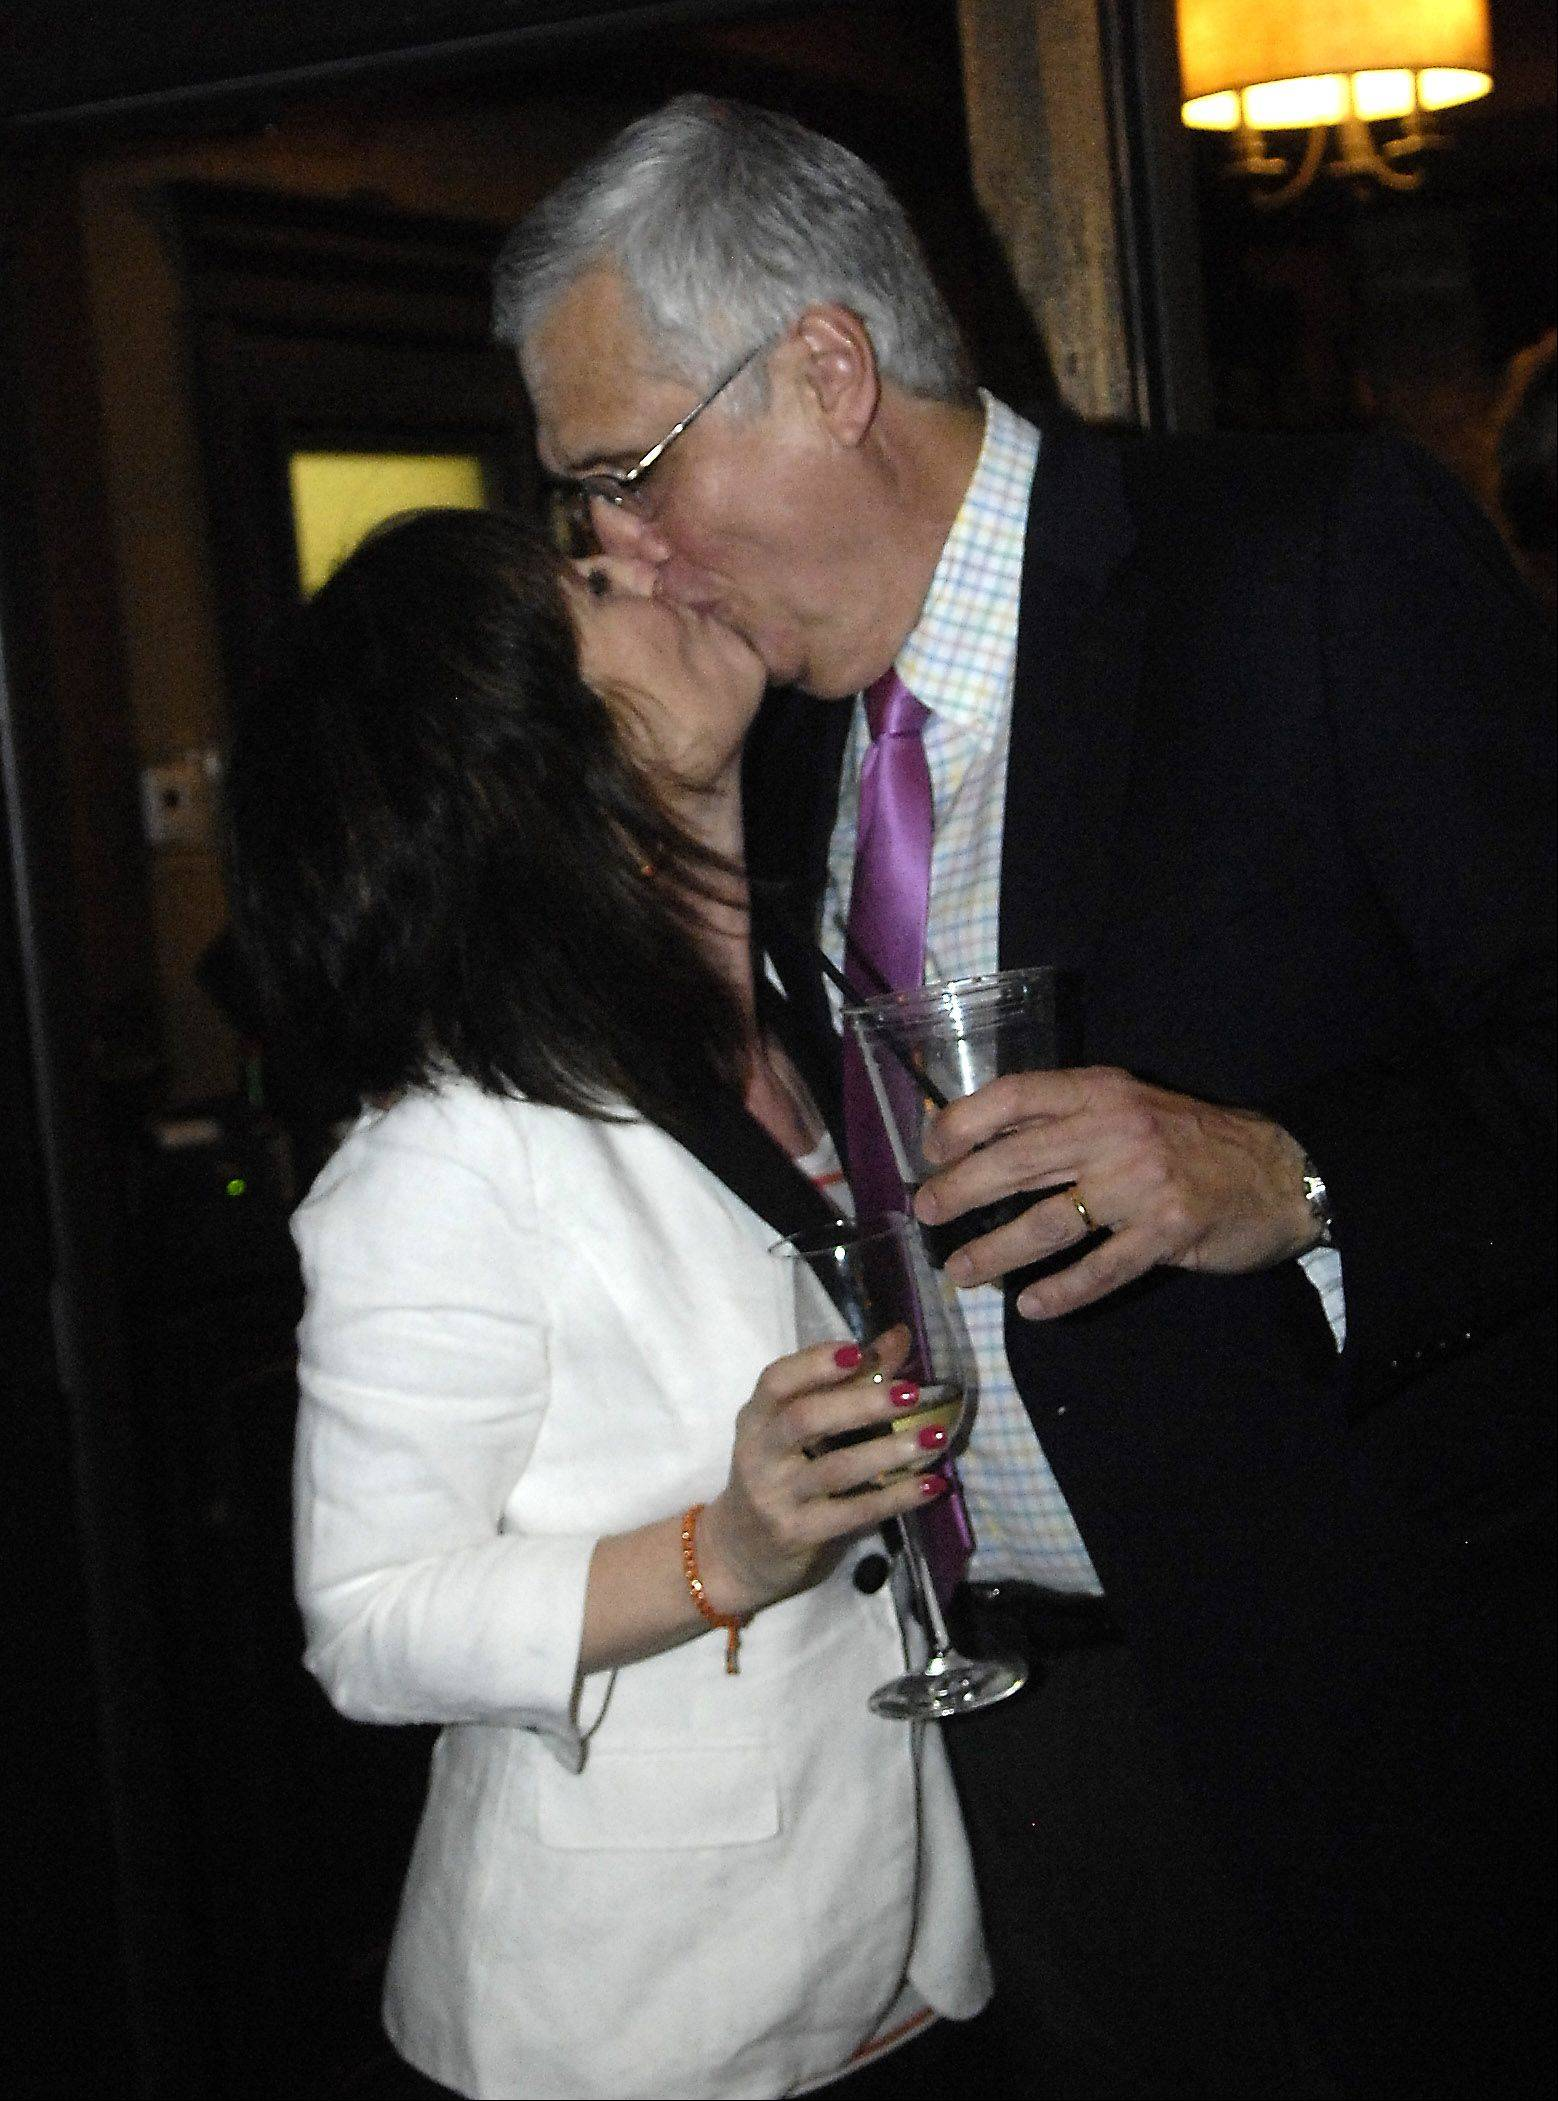 Newly elected St. Charles mayor Ray Rogina gets a kiss from his wife Diane Cullen when the news becomes official that he won during his election night party at The Office in St. Charles Tuesday.